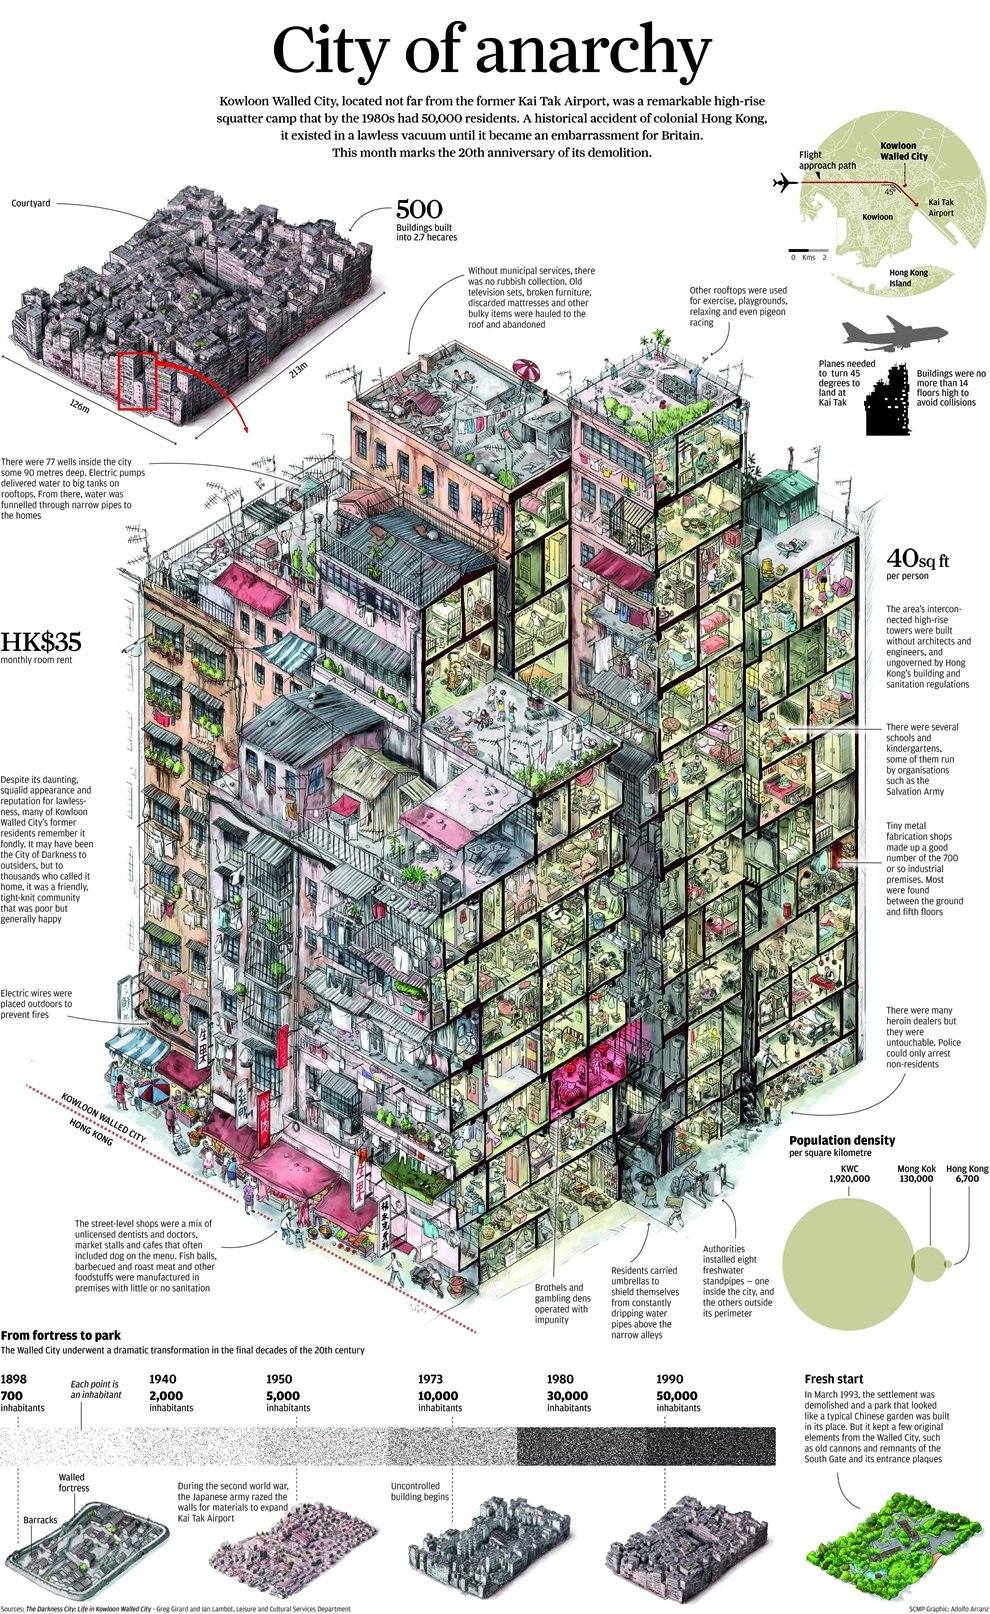 anatomy of densest city kowloon walled city The Anatomy Of The Worlds Densest City